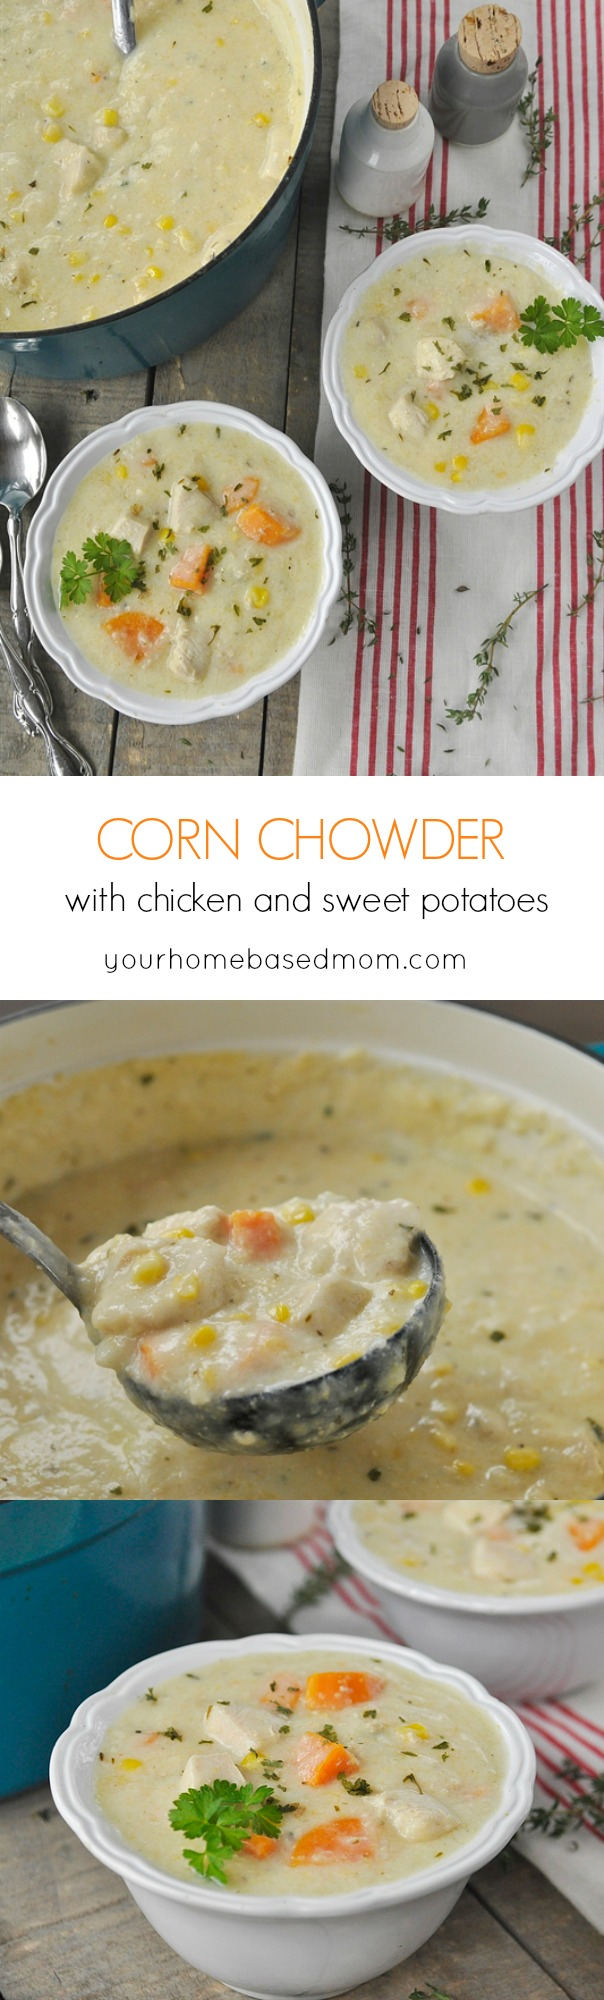 Corn Chowder with Chicken and Sweet Potatoes